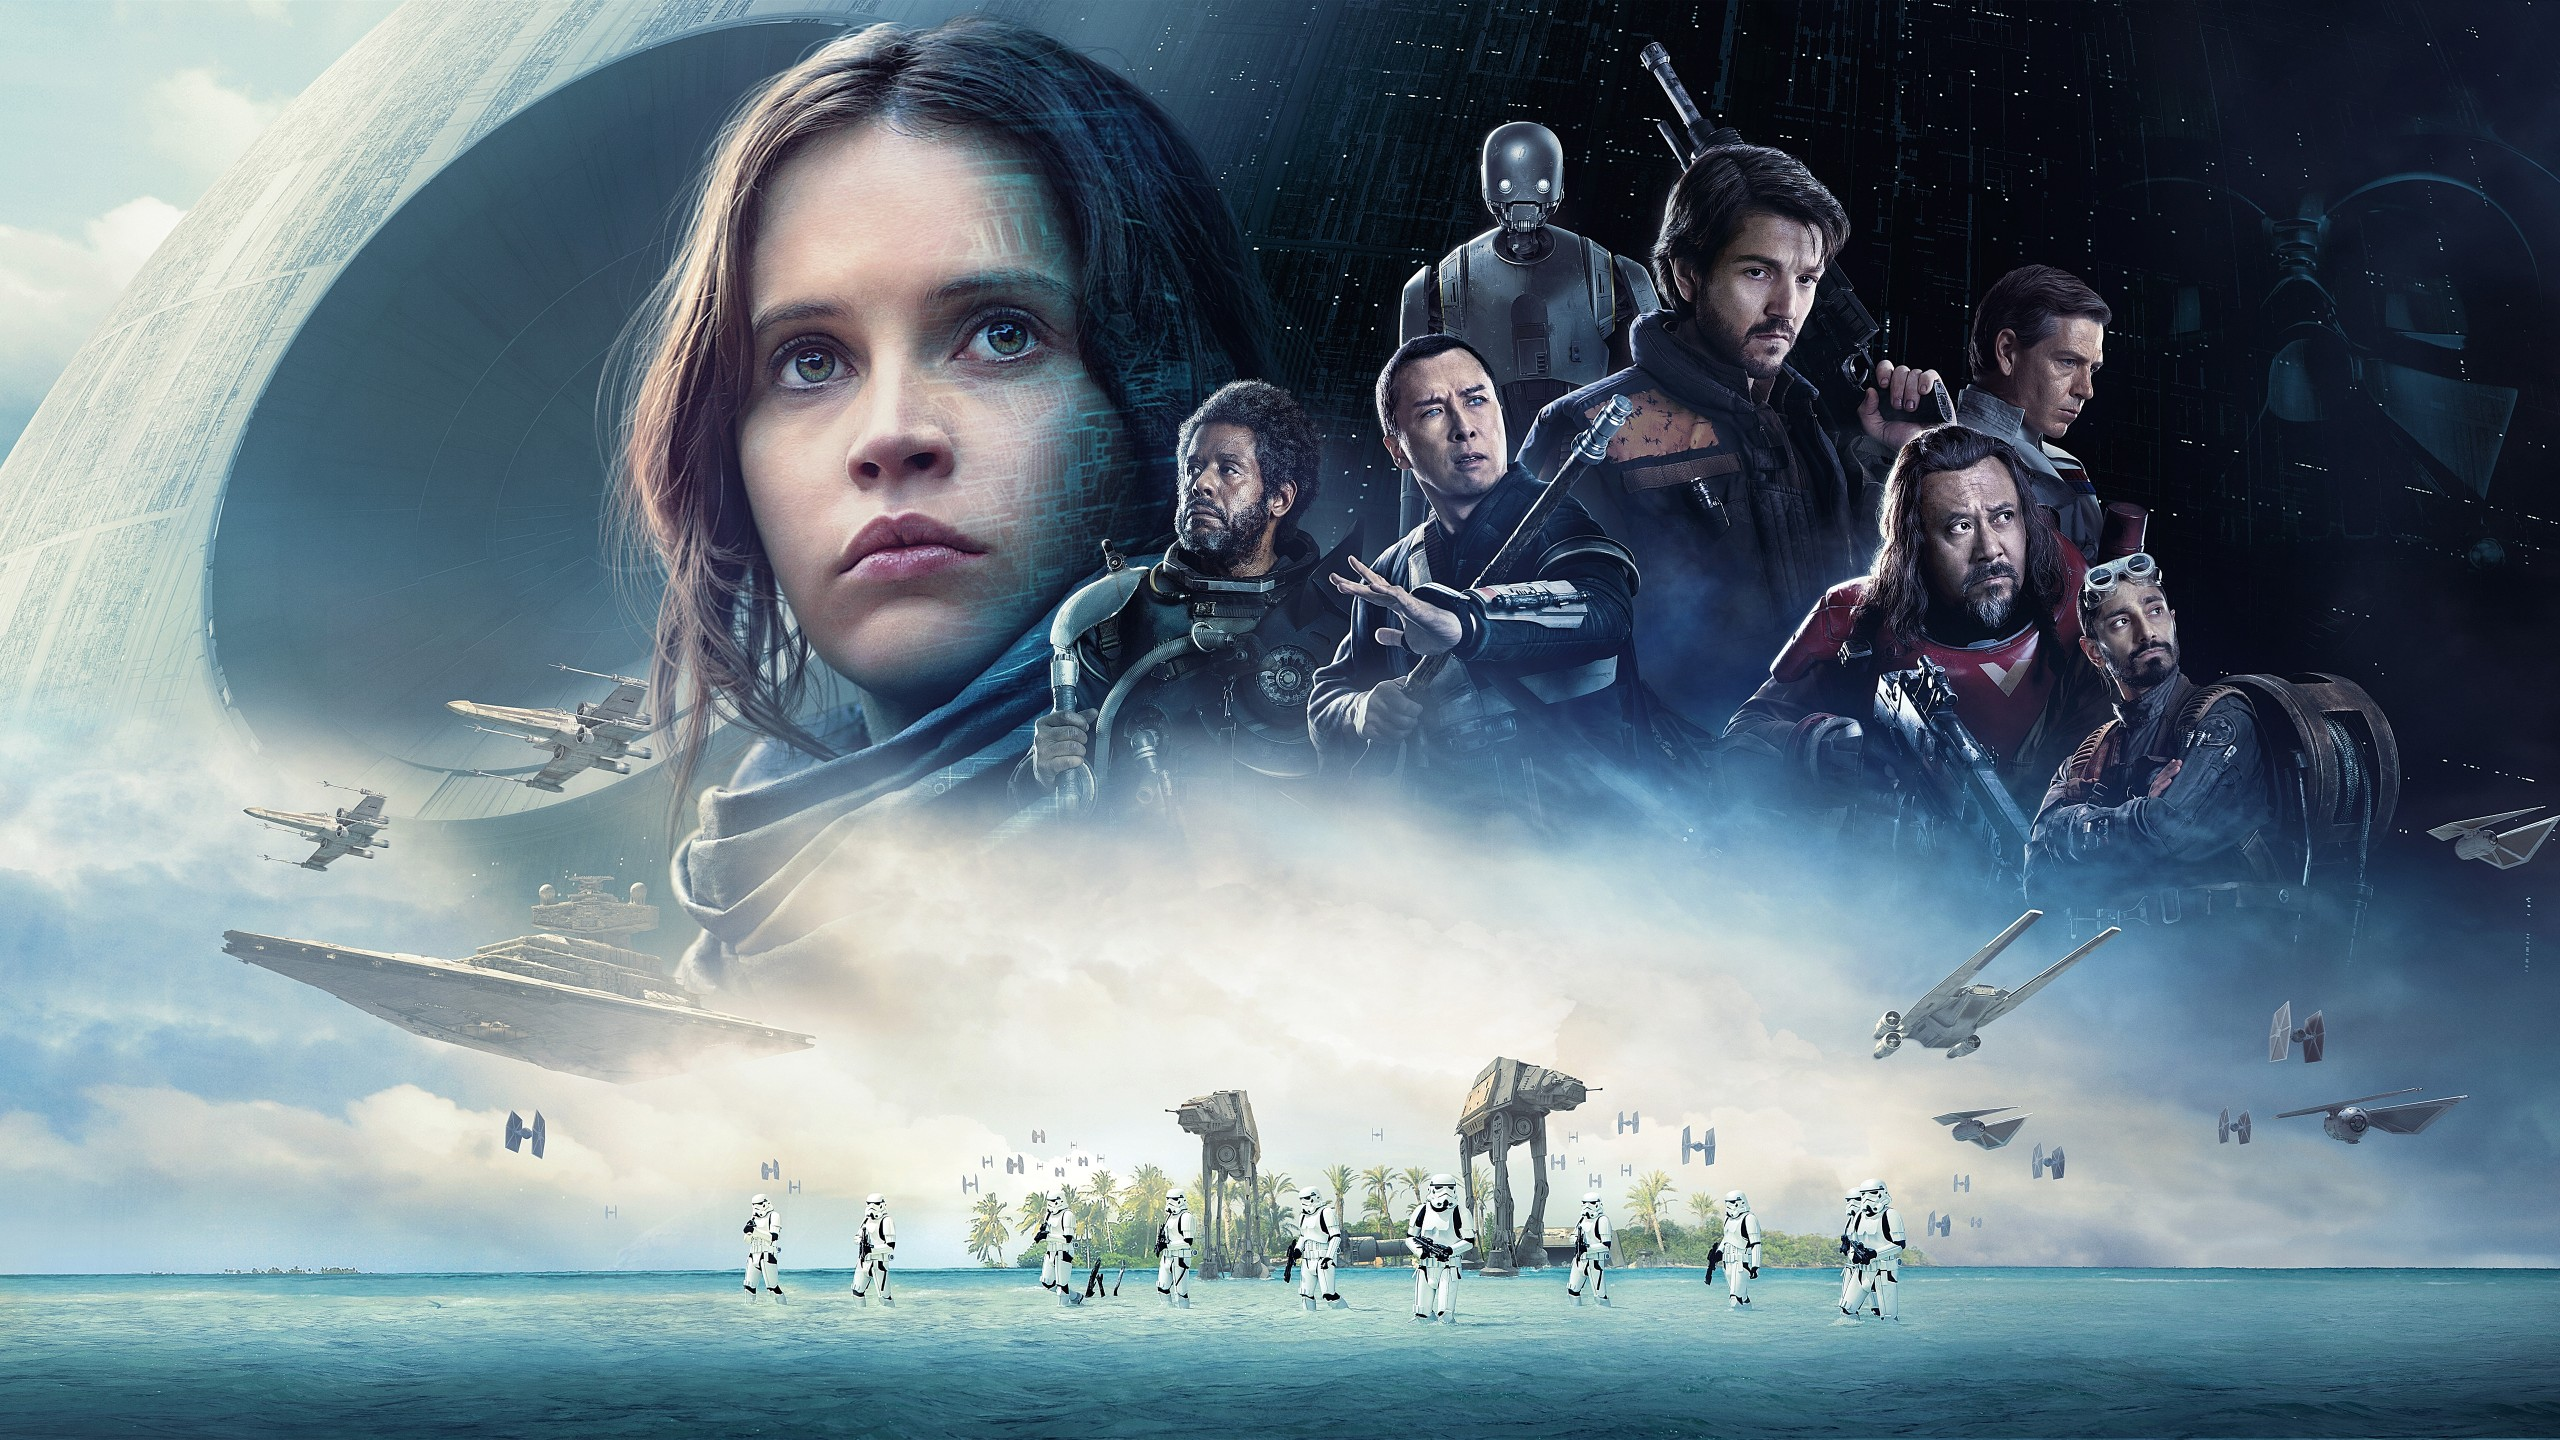 Star Wars Movie Wallpapers Posted By Samantha Sellers